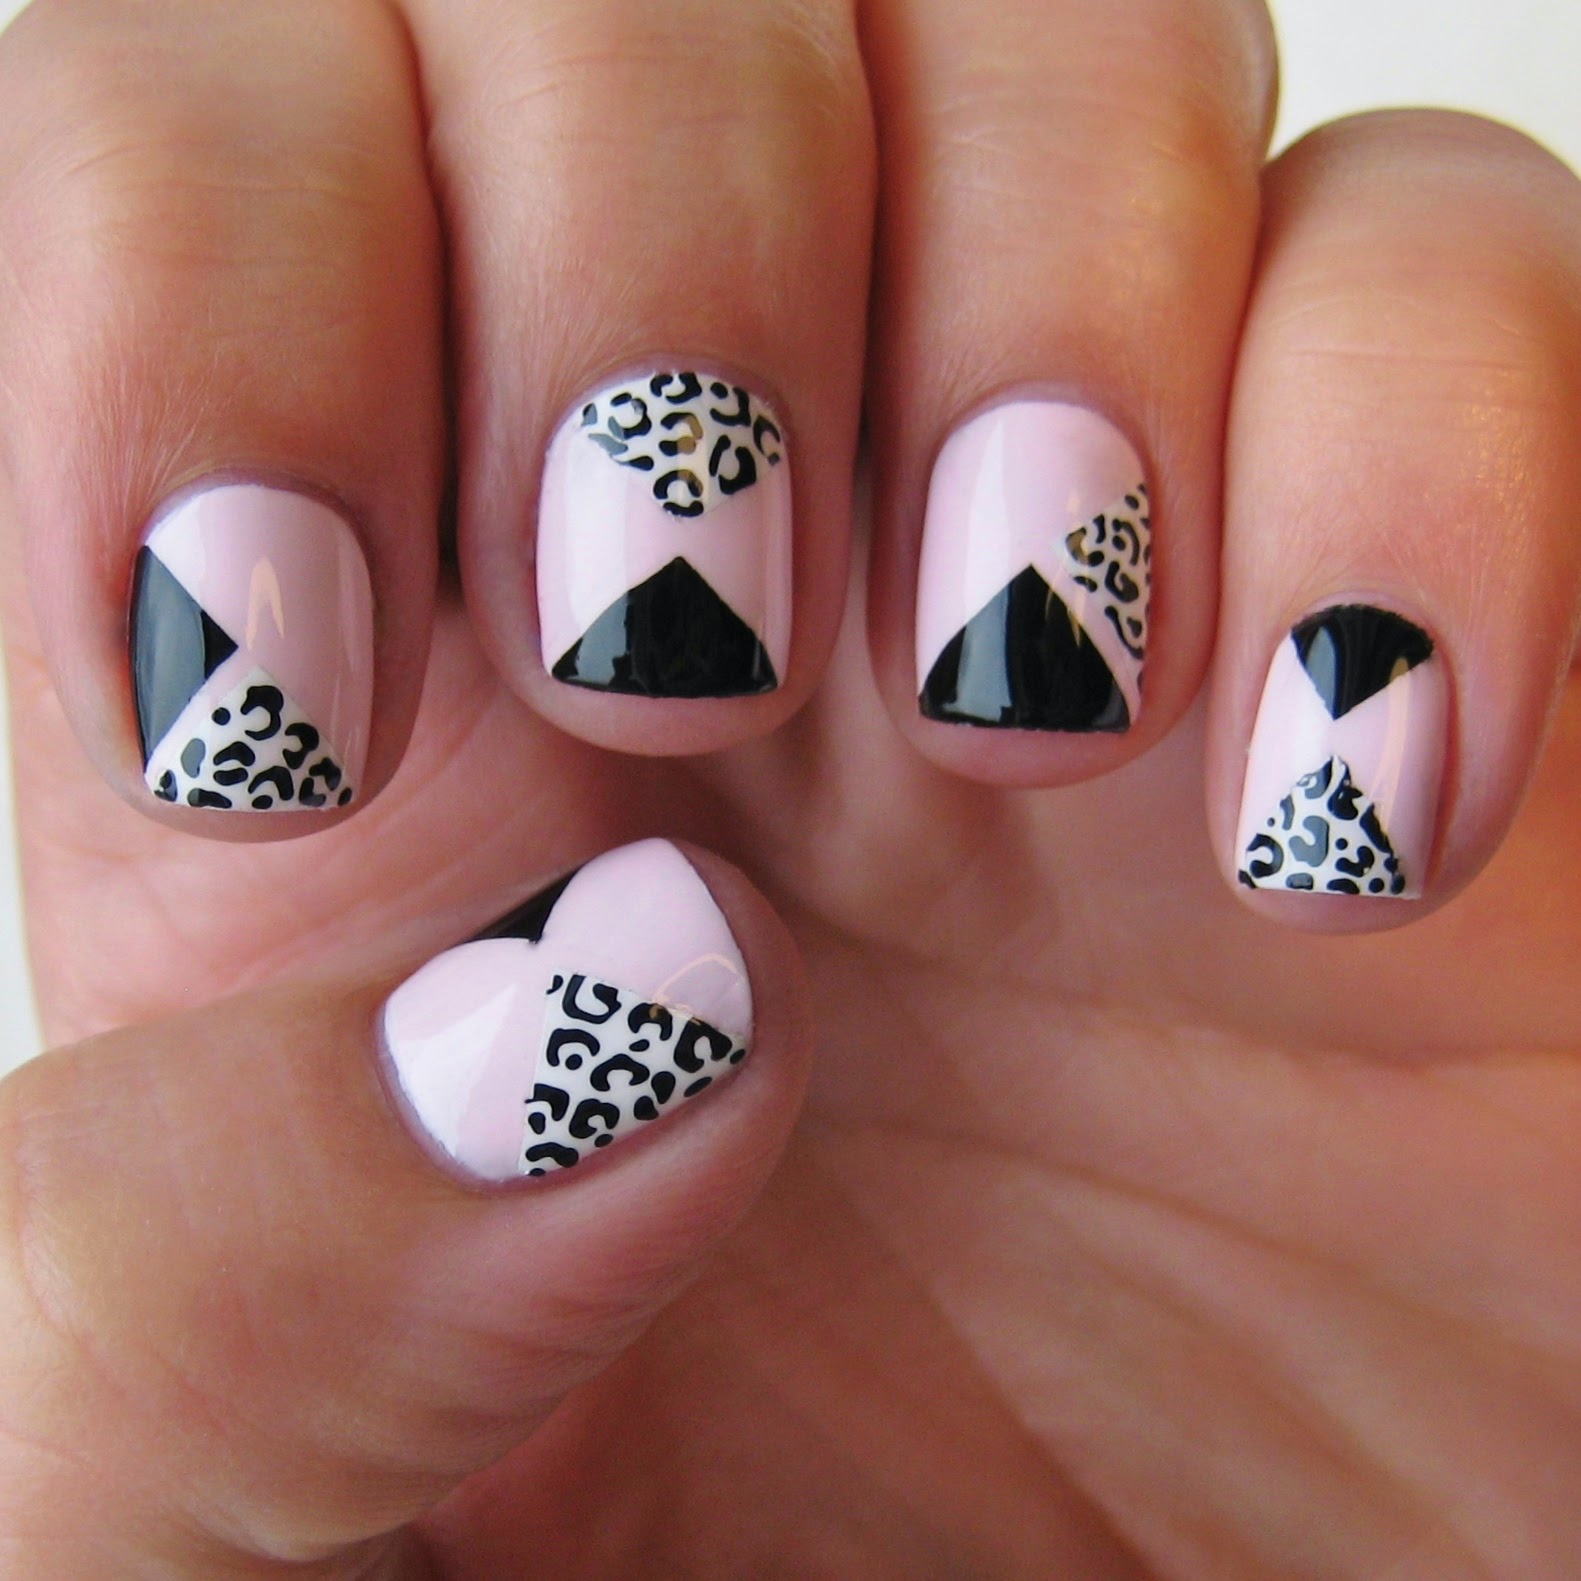 Dahlia nails mani swap one nail to rule them all jos version of pink geometric leopard print prinsesfo Image collections